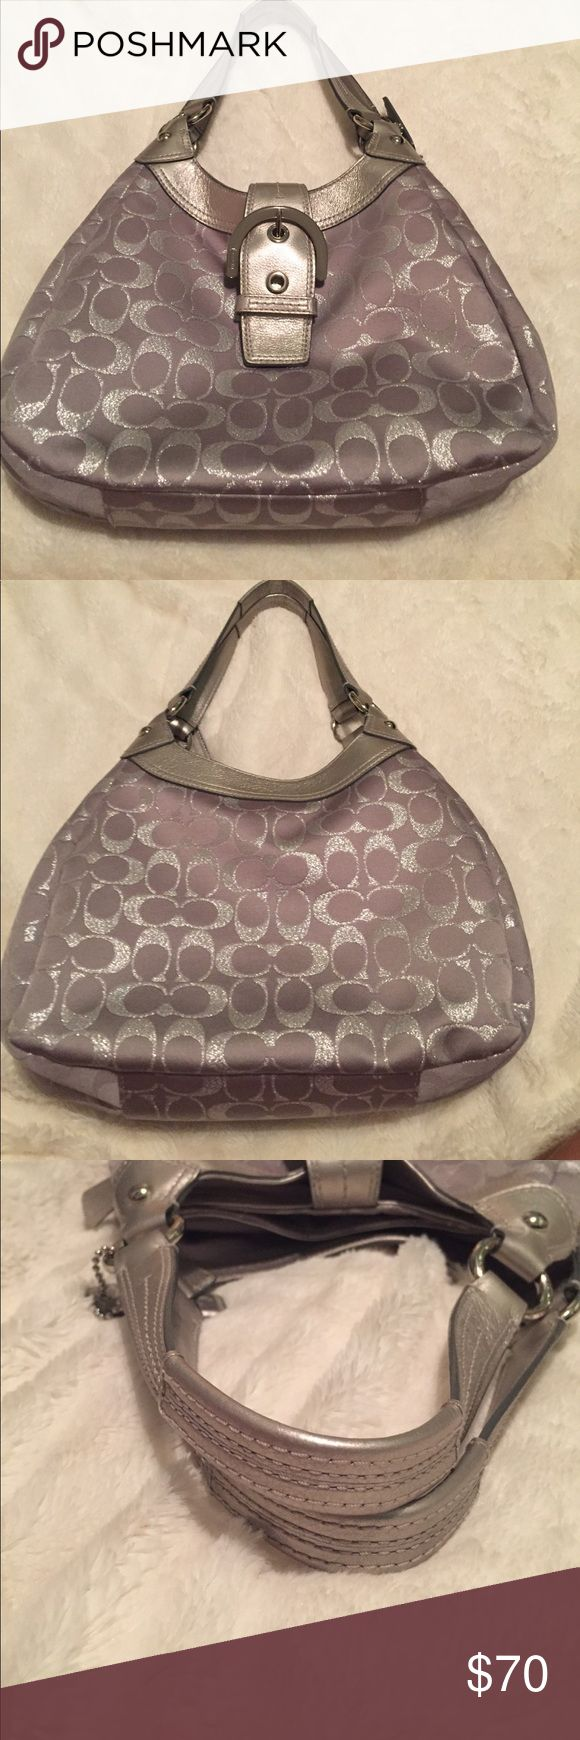 Coach hobo bag Barely used practically brand new! Authentic! Got it as a gift, and haven't really used it. Coach Bags Hobos